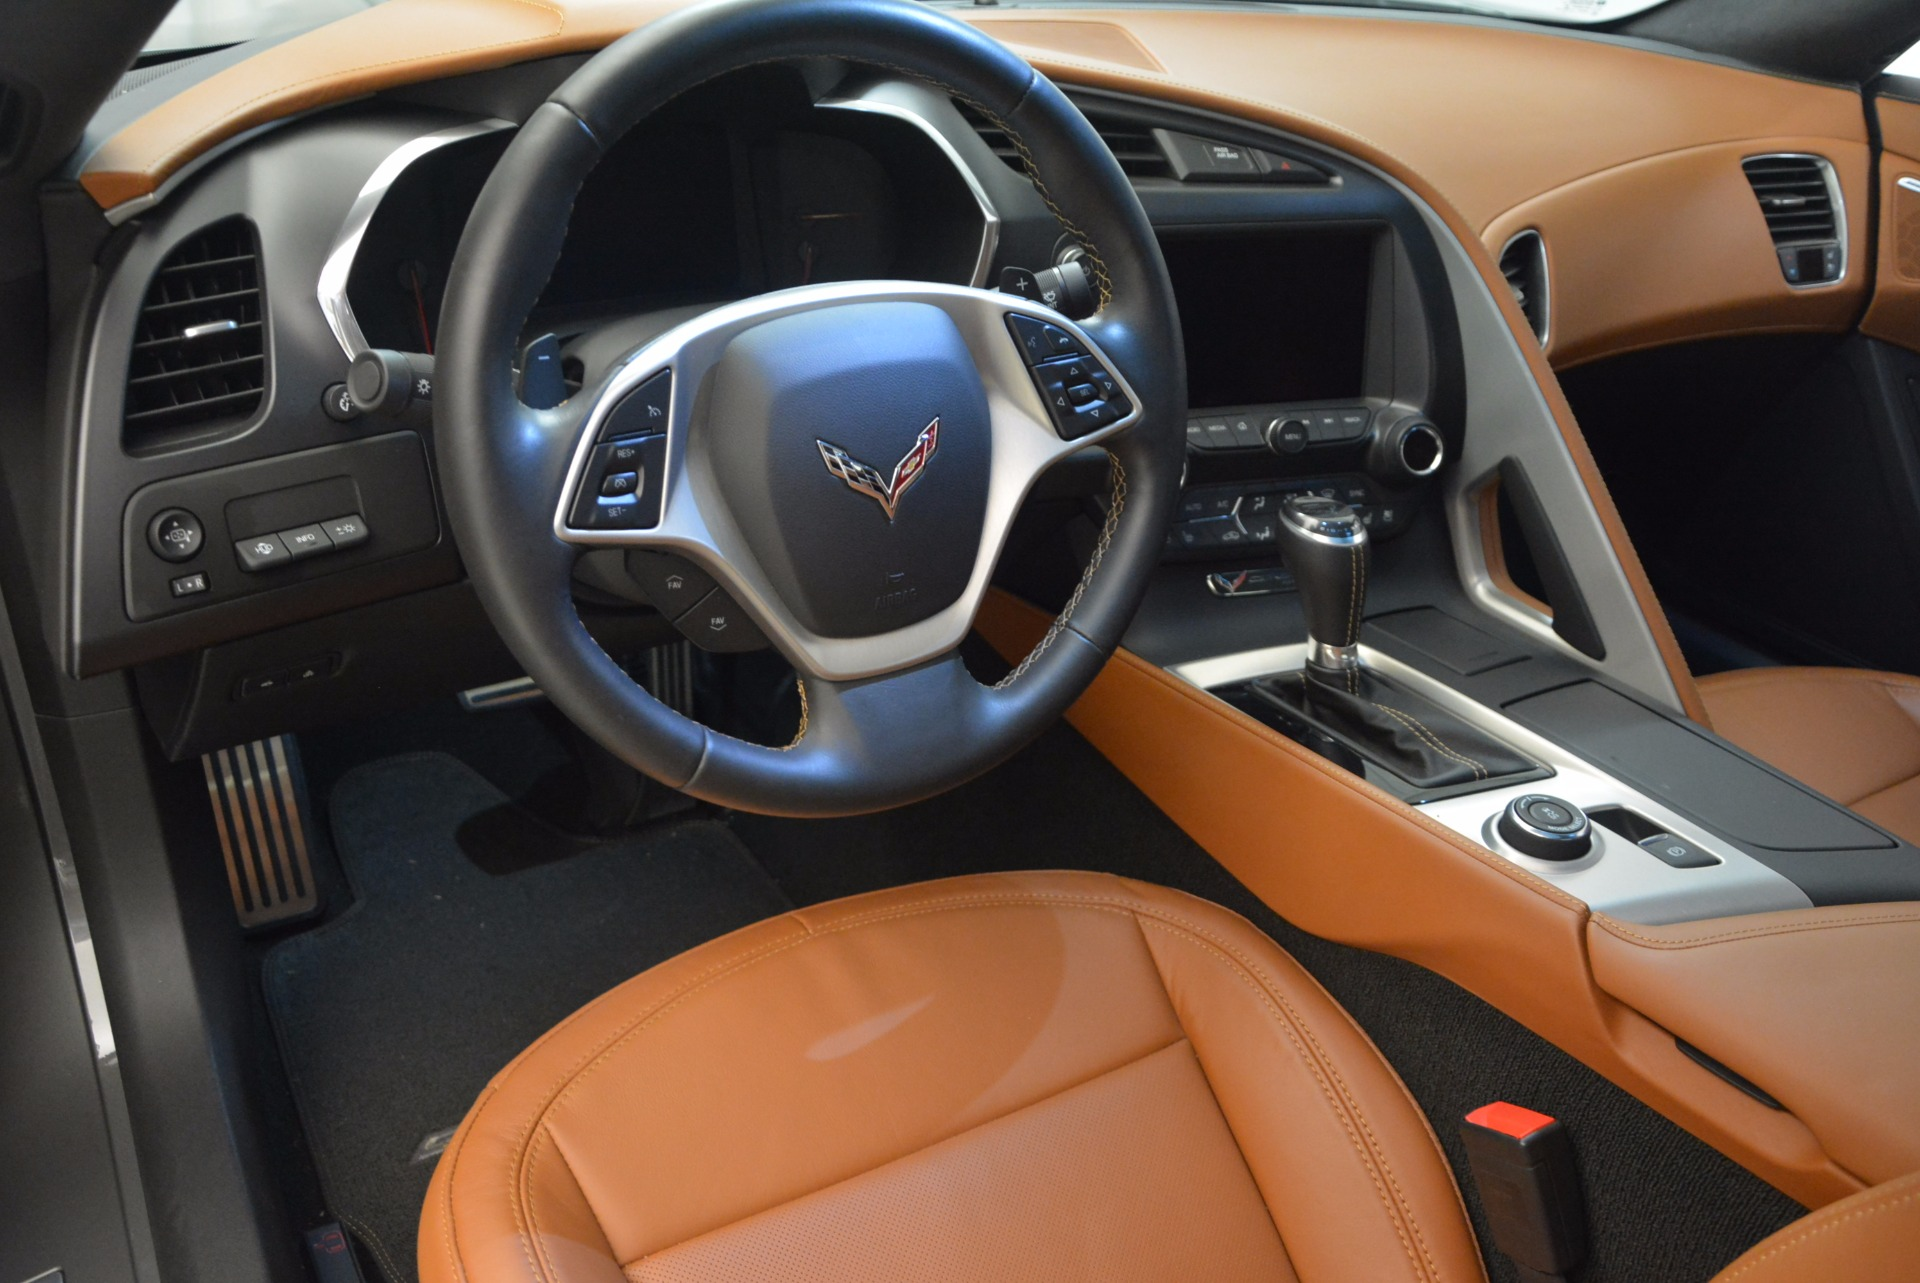 Used 2015 Chevrolet Corvette Stingray Z51 For Sale In Greenwich, CT 1589_p29